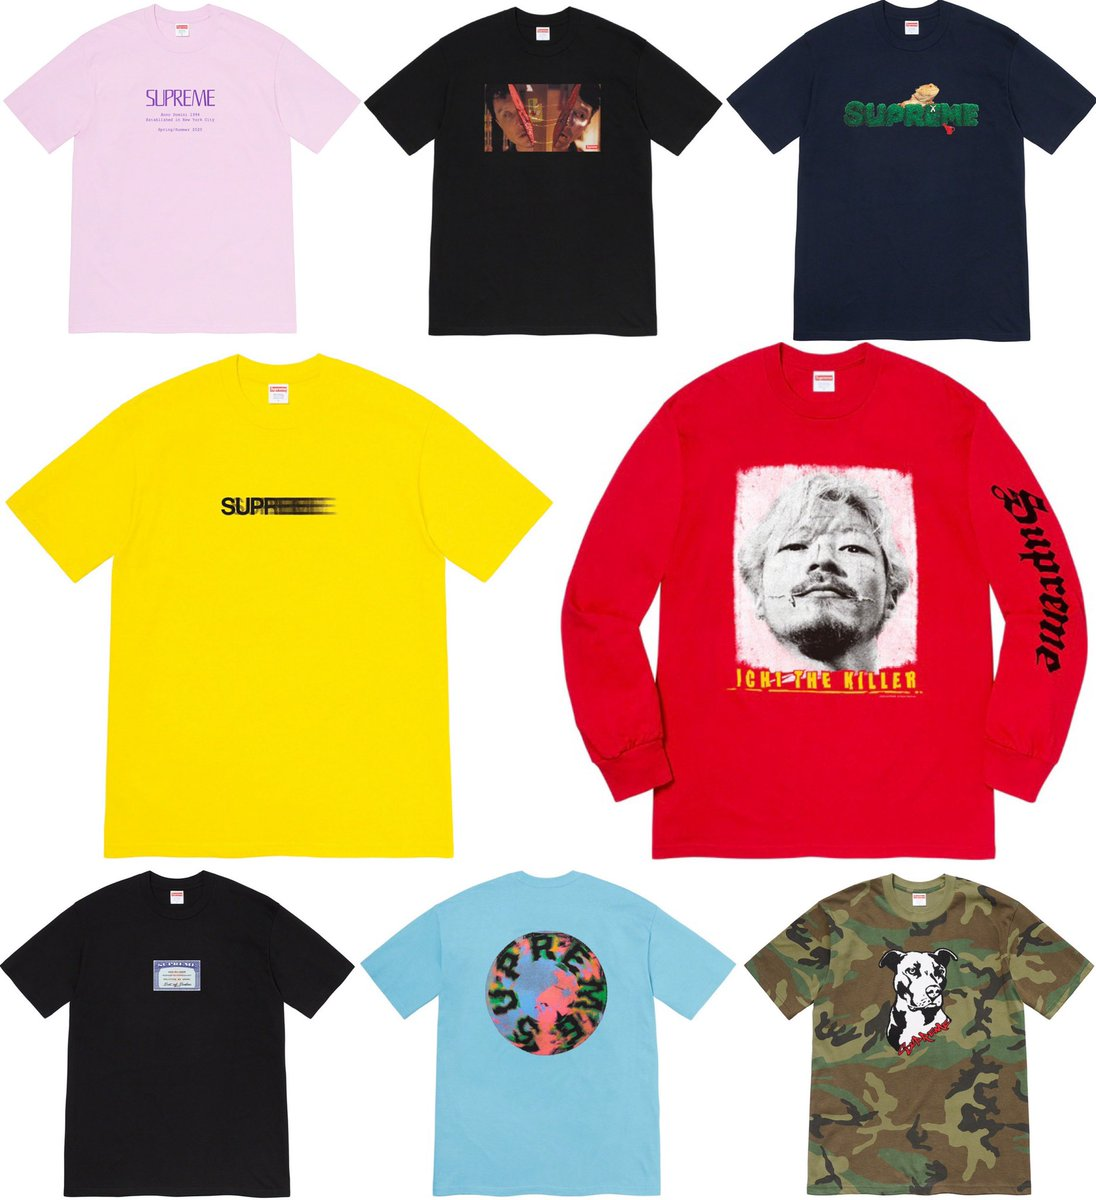 Official images of the Supreme Summer Tees set to release this Thursday, July 2nd.  Which tee is your favorite?